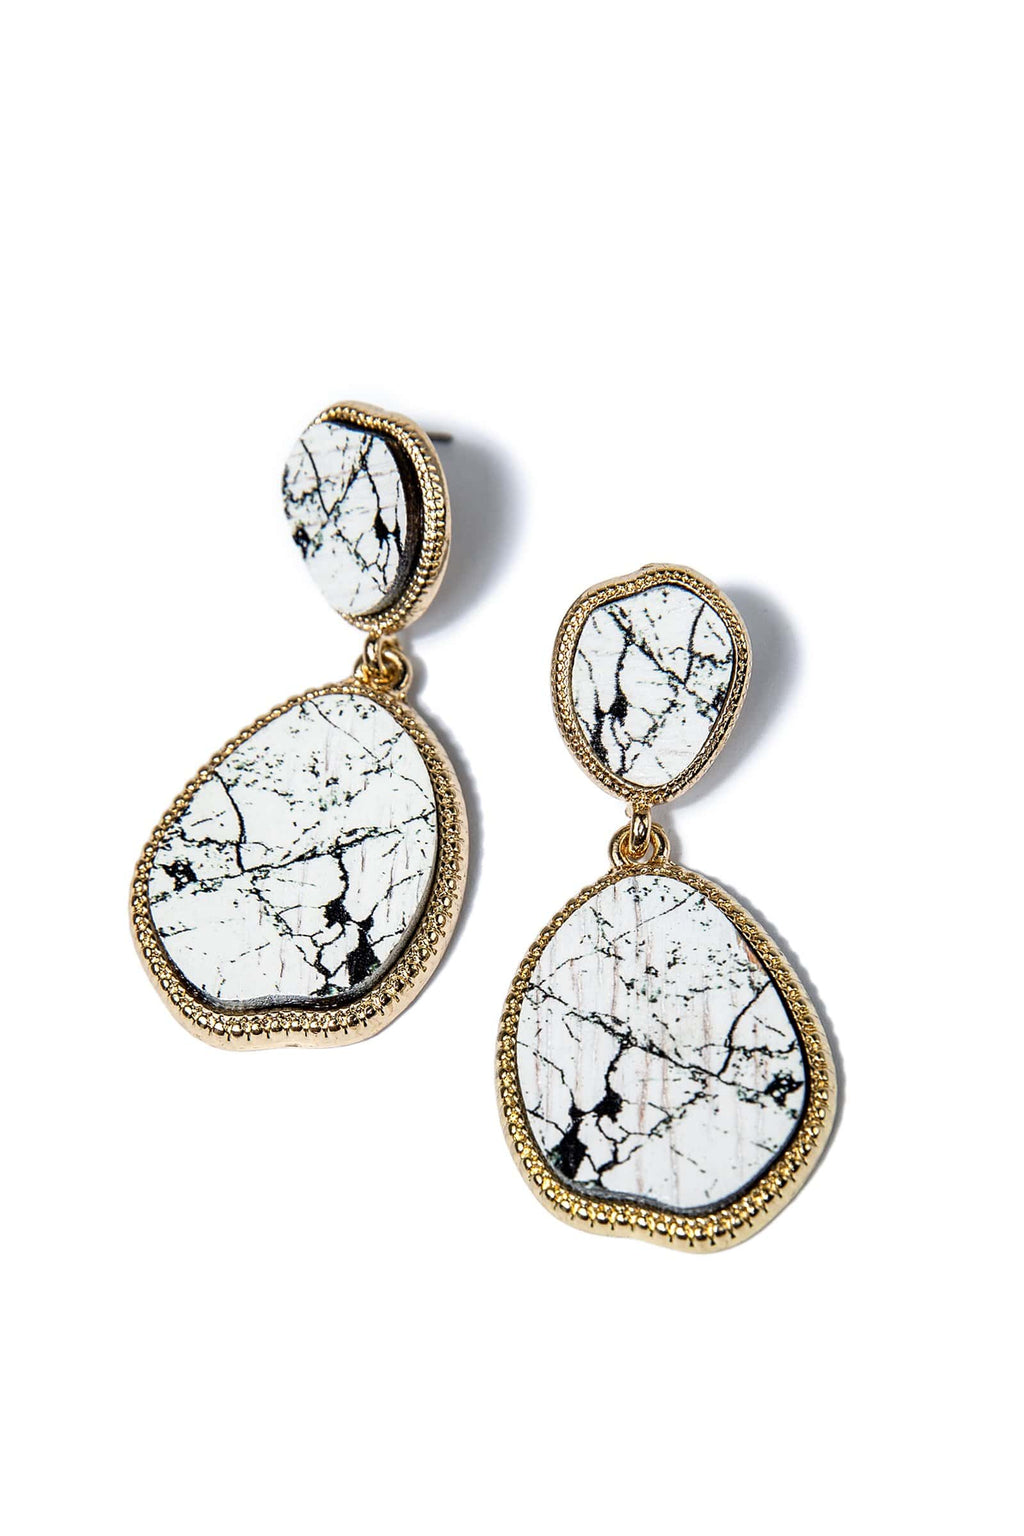 White Marble Earrings by J.ING women's fashions and accessories